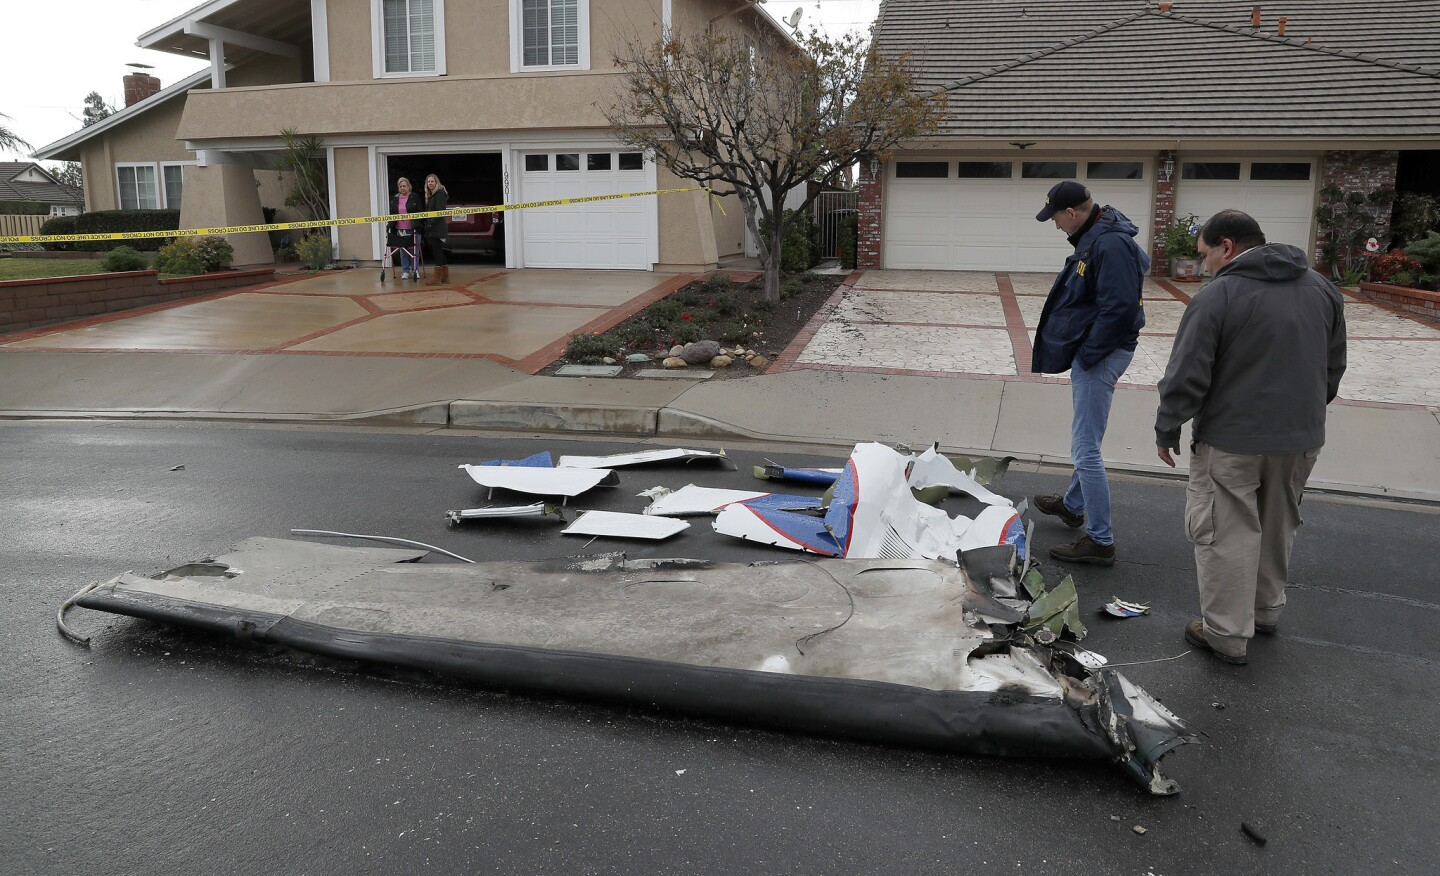 Peter Knudson, a media relations specialist with the National Transportation Safety Board, left, and air safety investigator Ricardo Asensio review pieces of a Cessna airplane that crashed into a Yorba Linda home. Five people, including pilot Antonio Pastini, were killed.